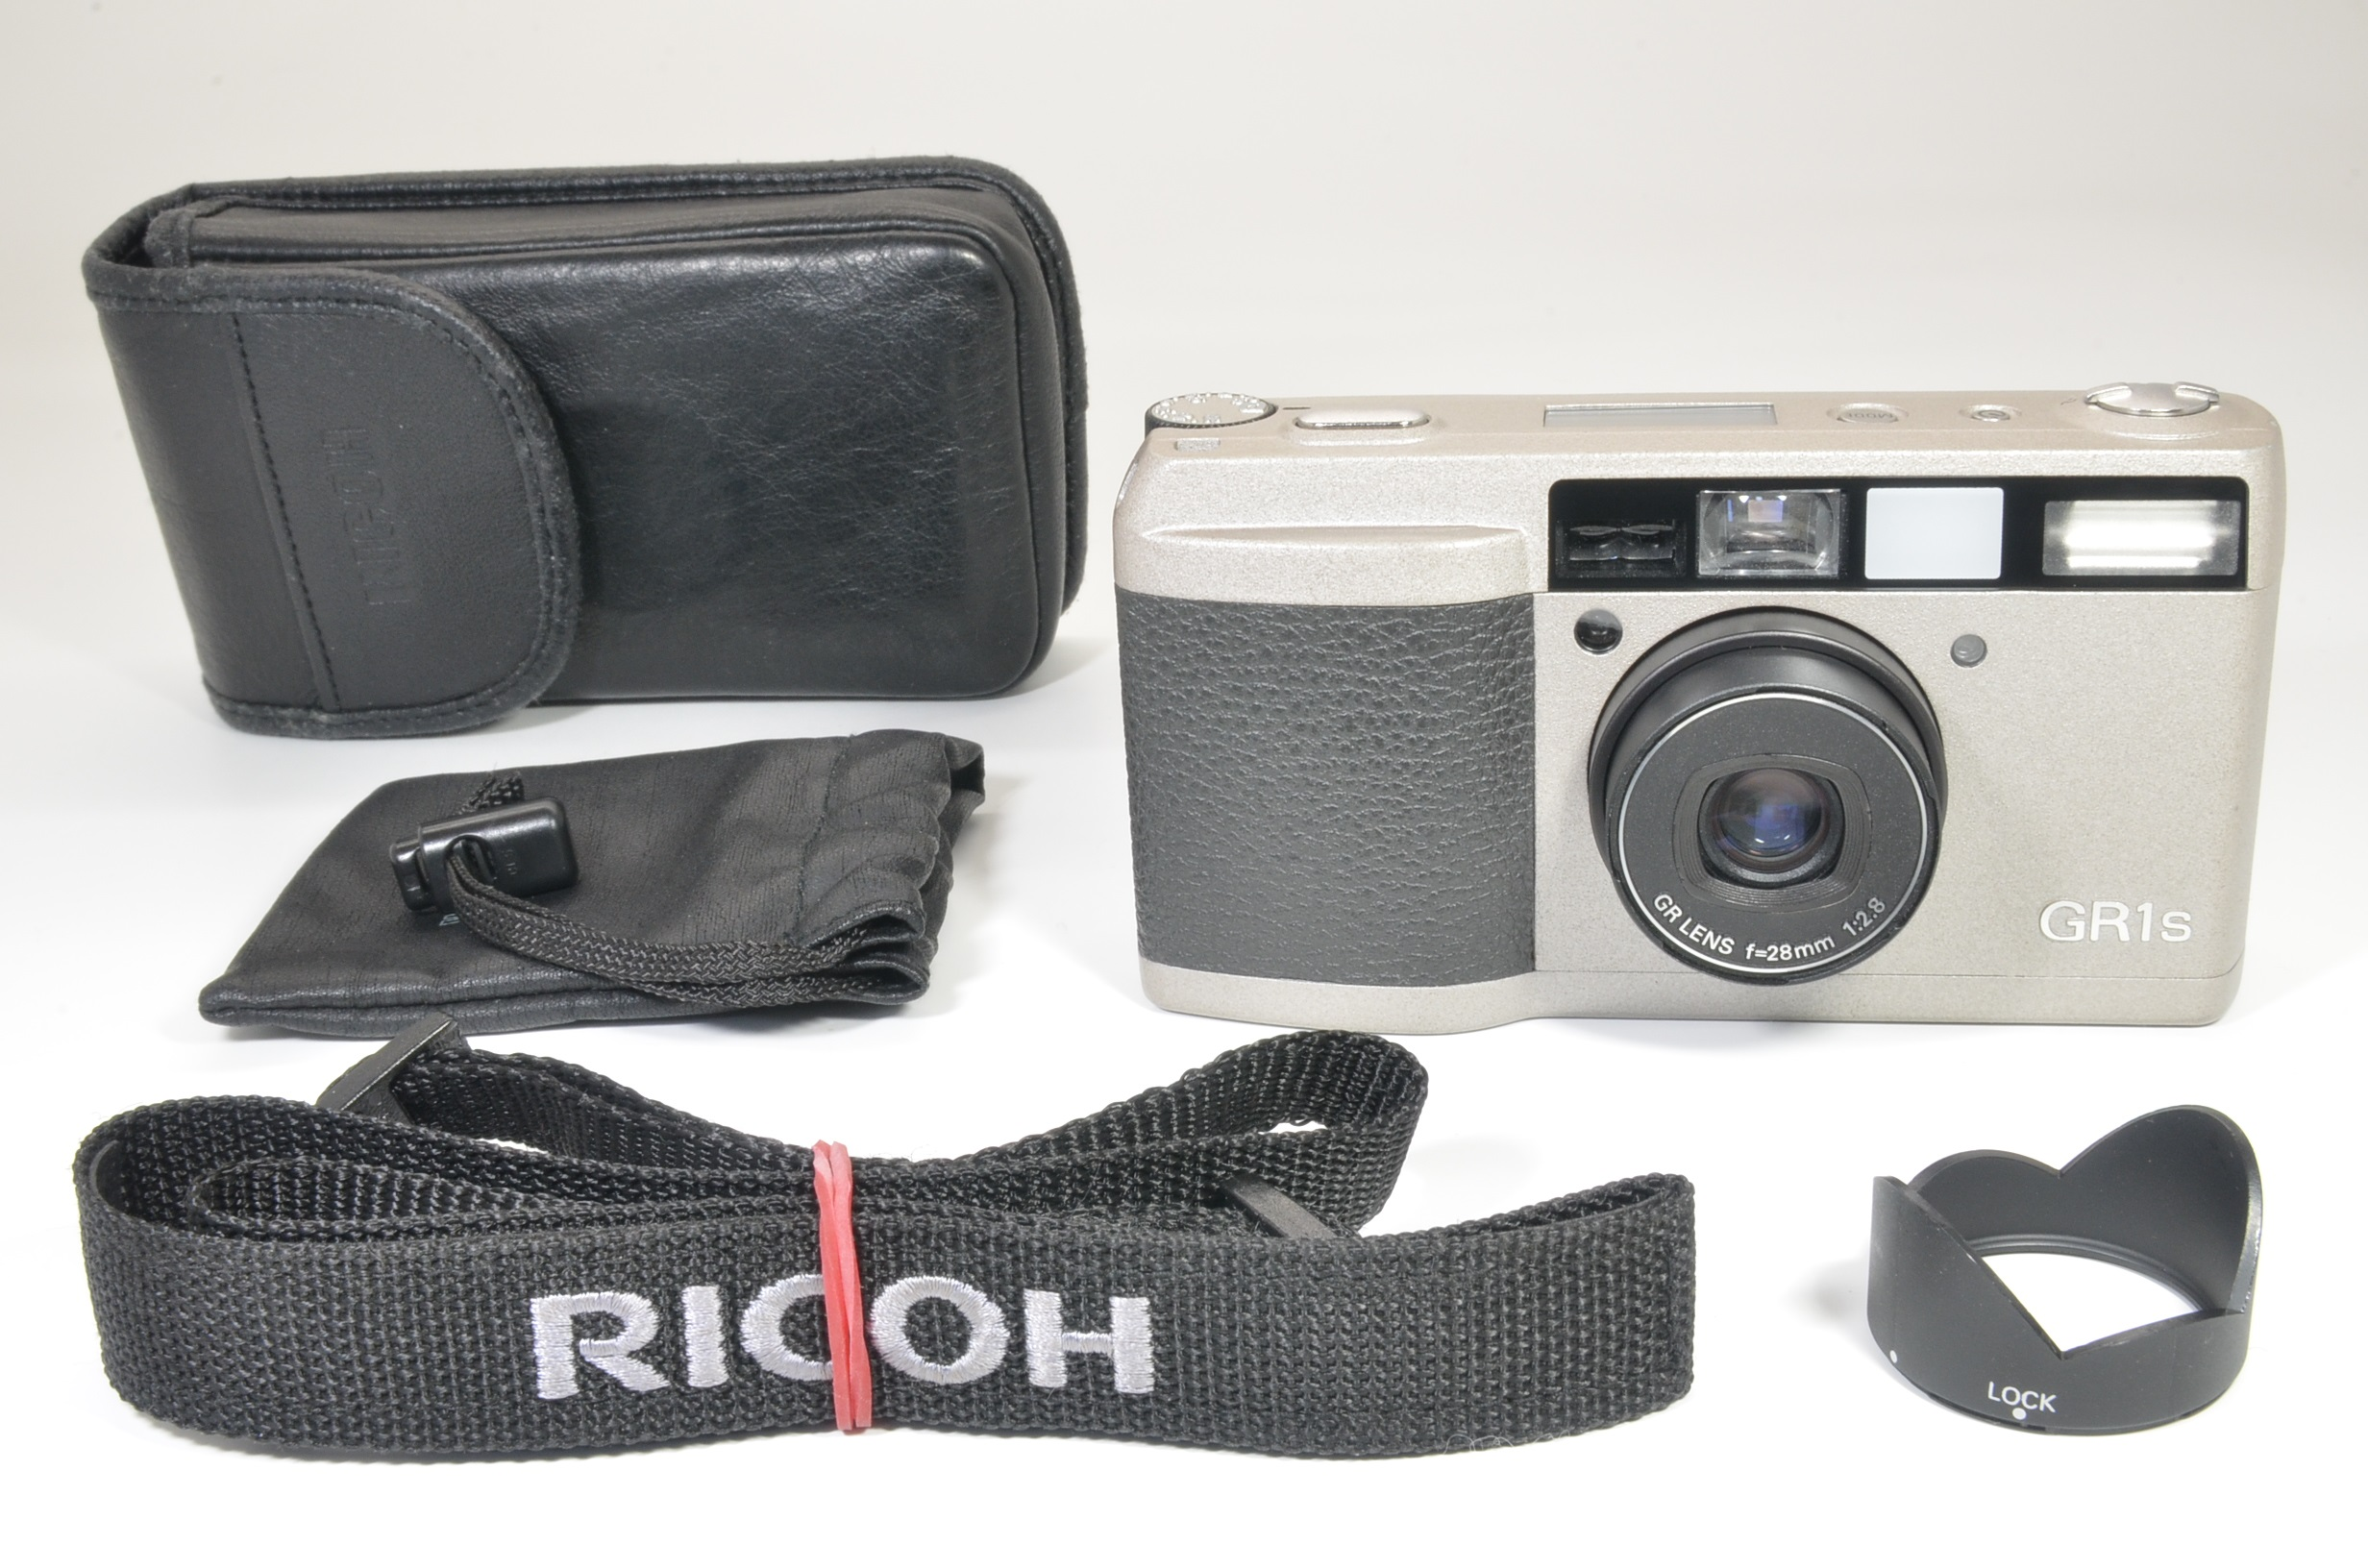 ricoh gr1s date silver 28mm f2.8 p&s film camera  shooting tested